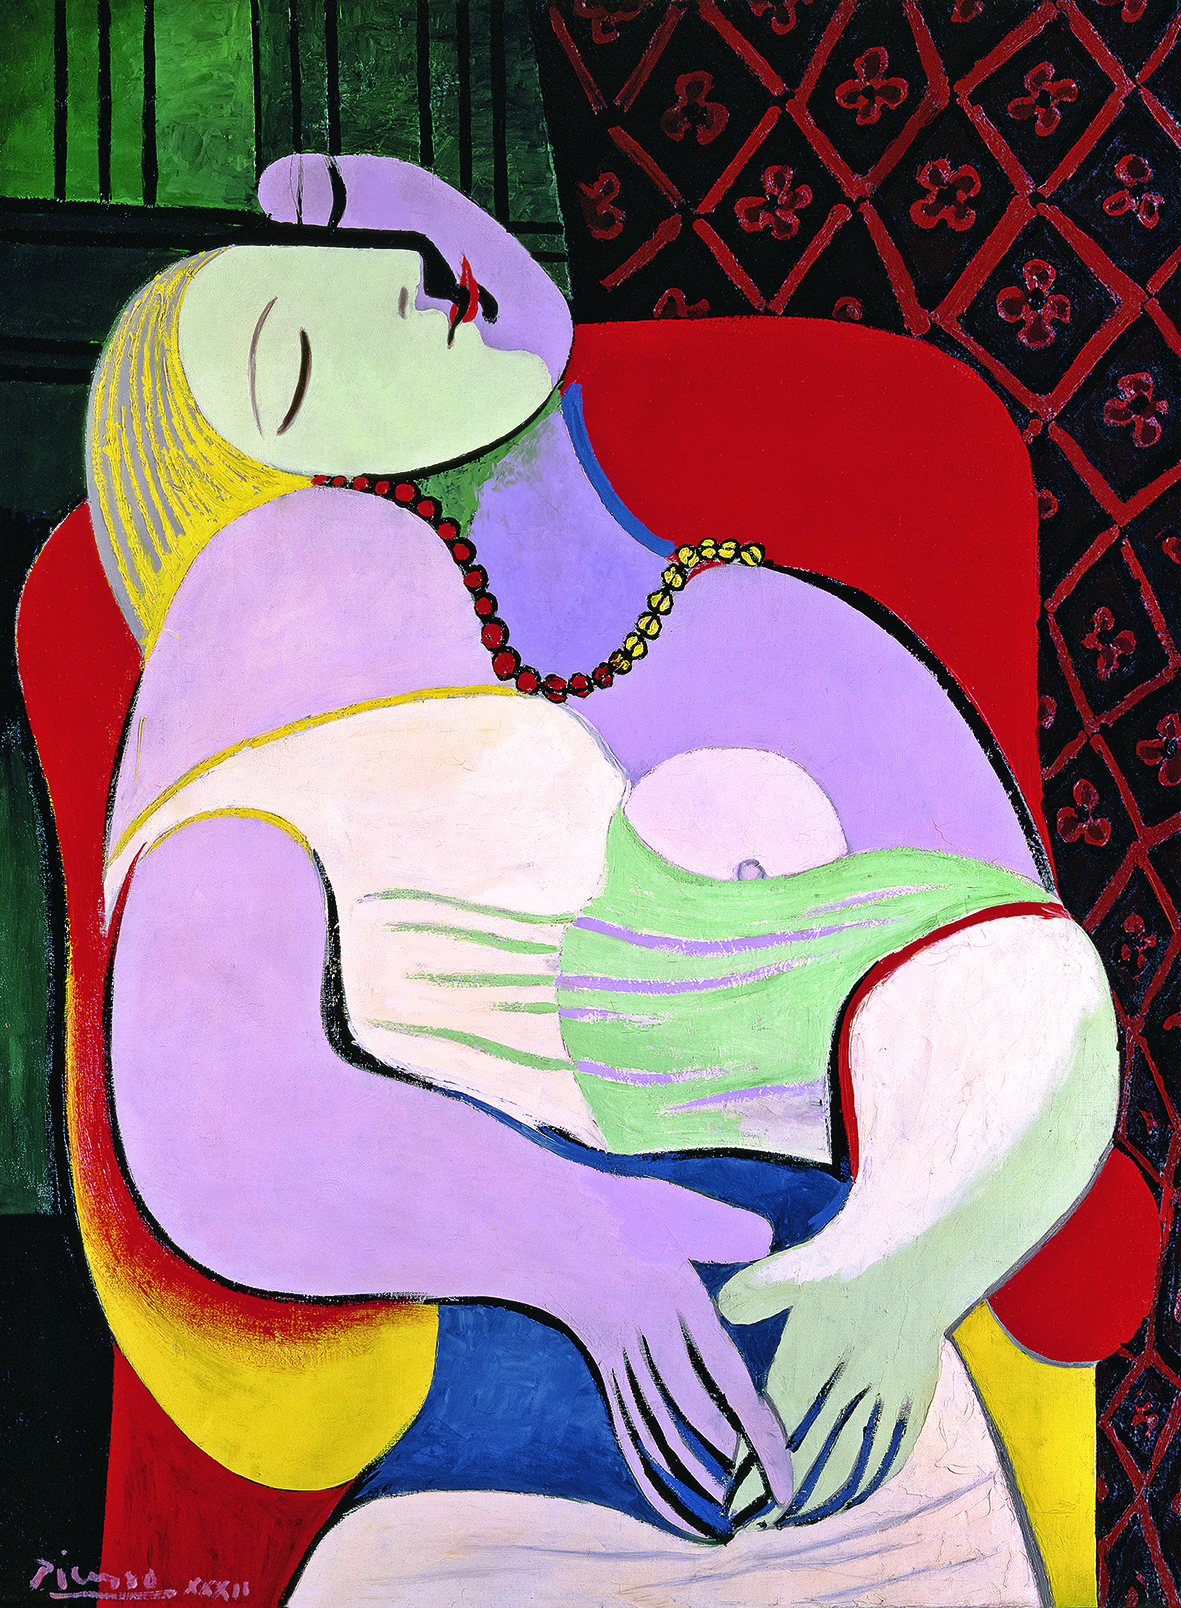 Tate Modern - The EY Exhibition: Picasso 1932 - Love, Fame, Tragedy